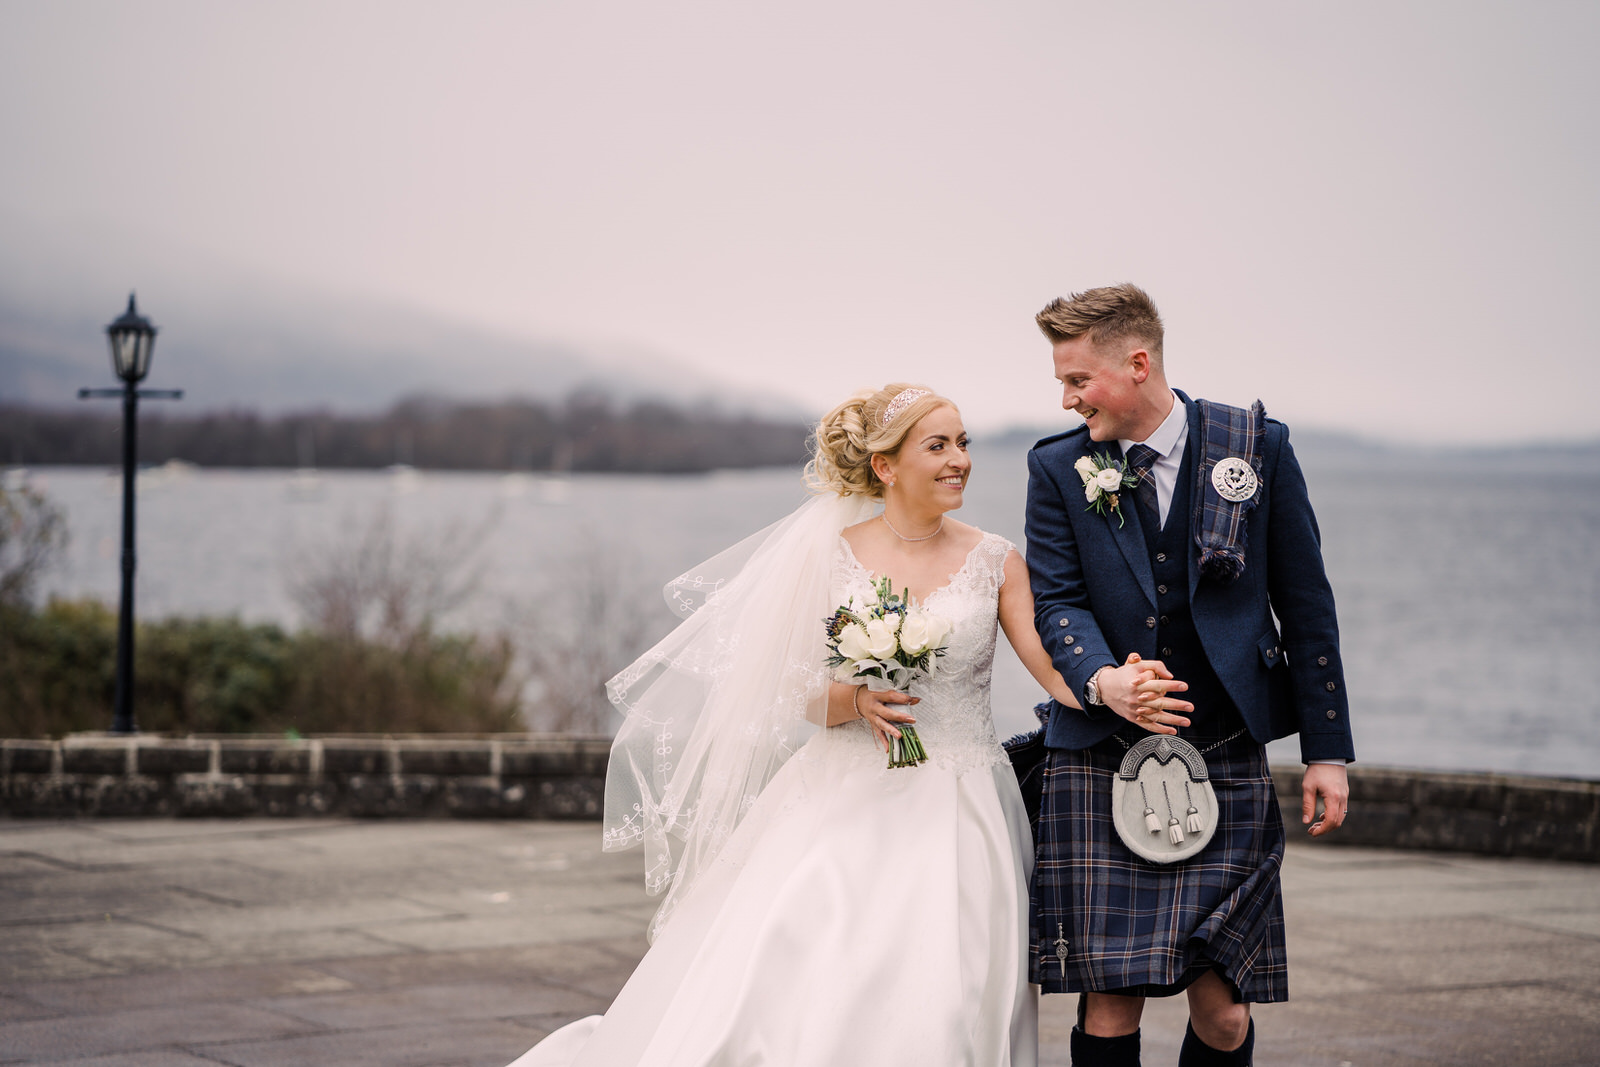 The Cruin - I love a Loch Lomond Wedding, and this exclusive little venue is nestled in some of the most stunning scenery Scotland has to offer. With beautiful wood interior, and panoramic views across the loch, it is one of my favourites! Take a peek at some photos from Jade & Graham's beautiful wedding here.